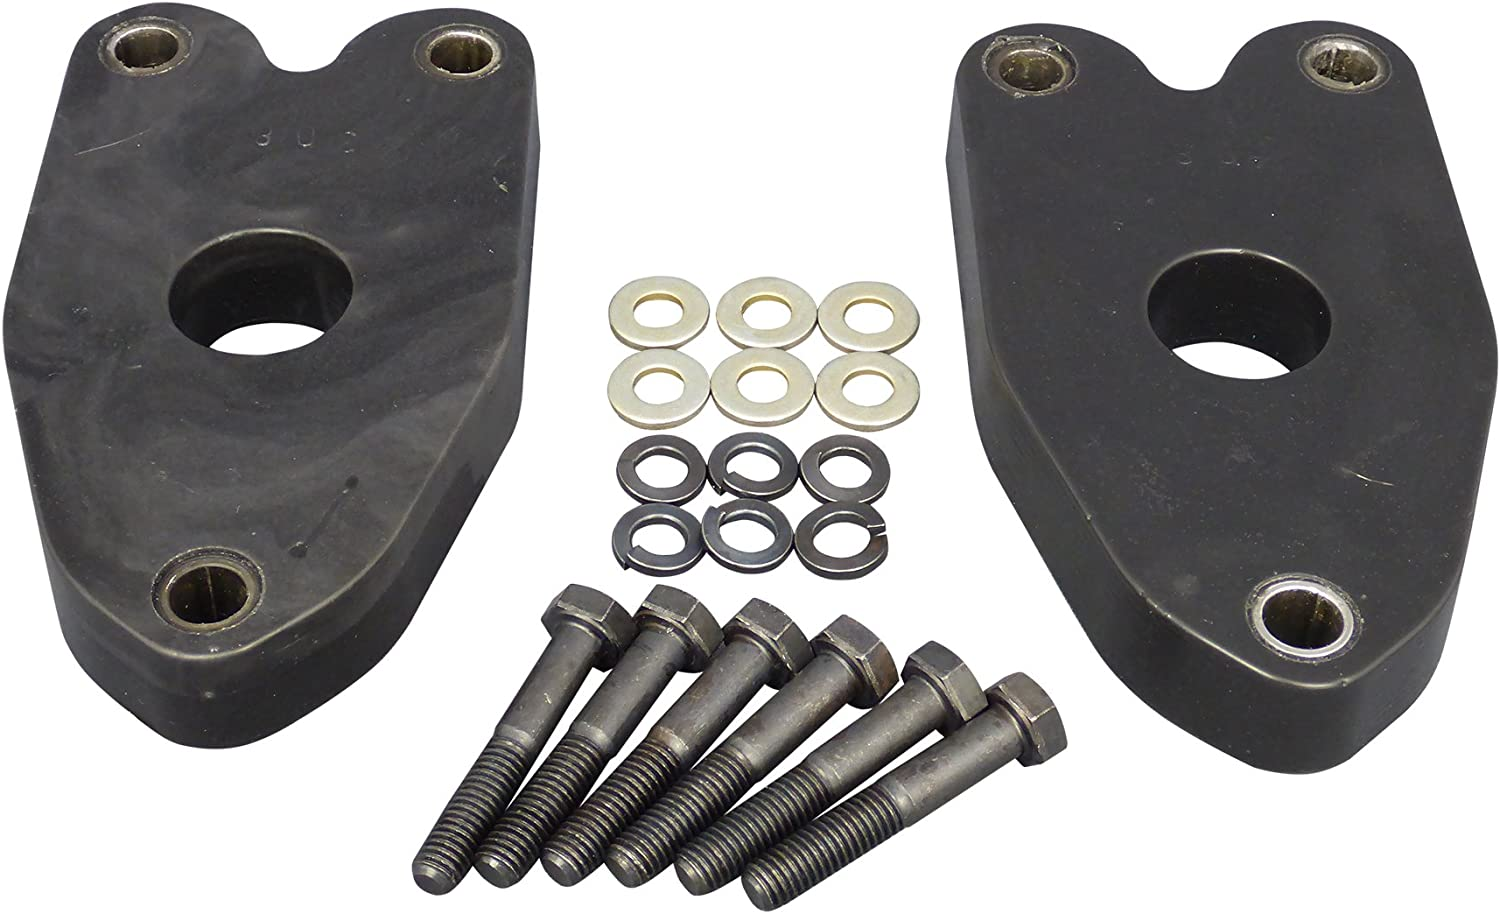 COUNTRYMAN HATCH Lift Kit Rear shock extenders 20mm for MINI CABRIO